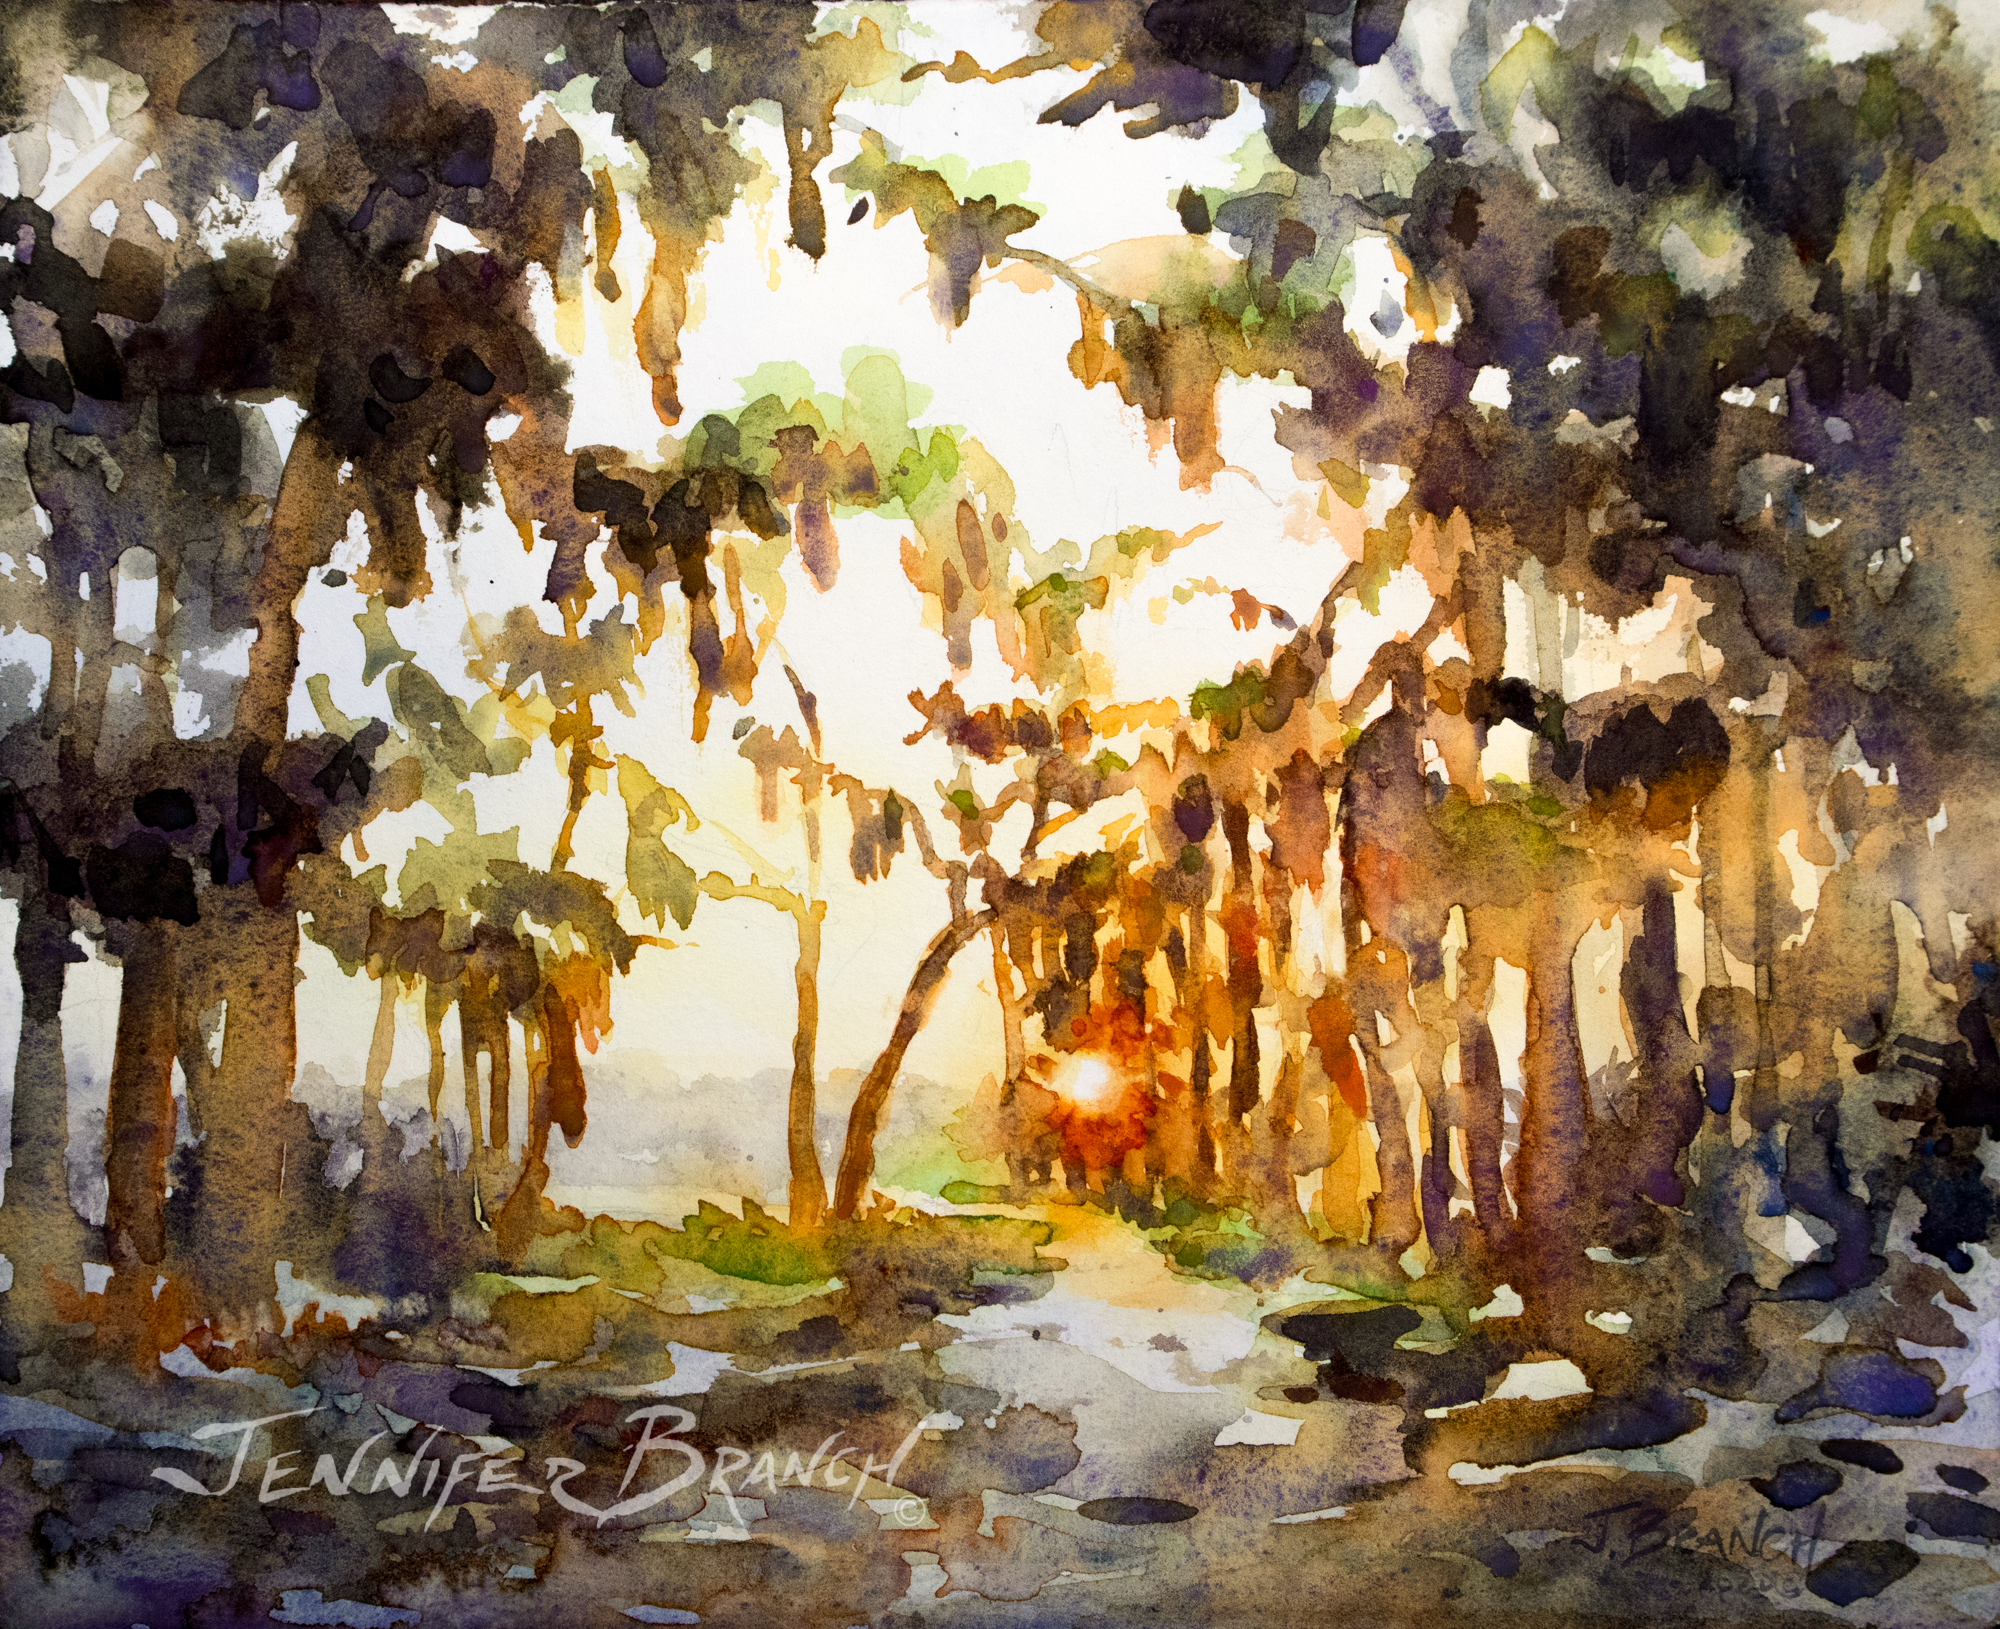 Sunset through live oaks and Spanish moss watercolor painting by Jennifer Branch.